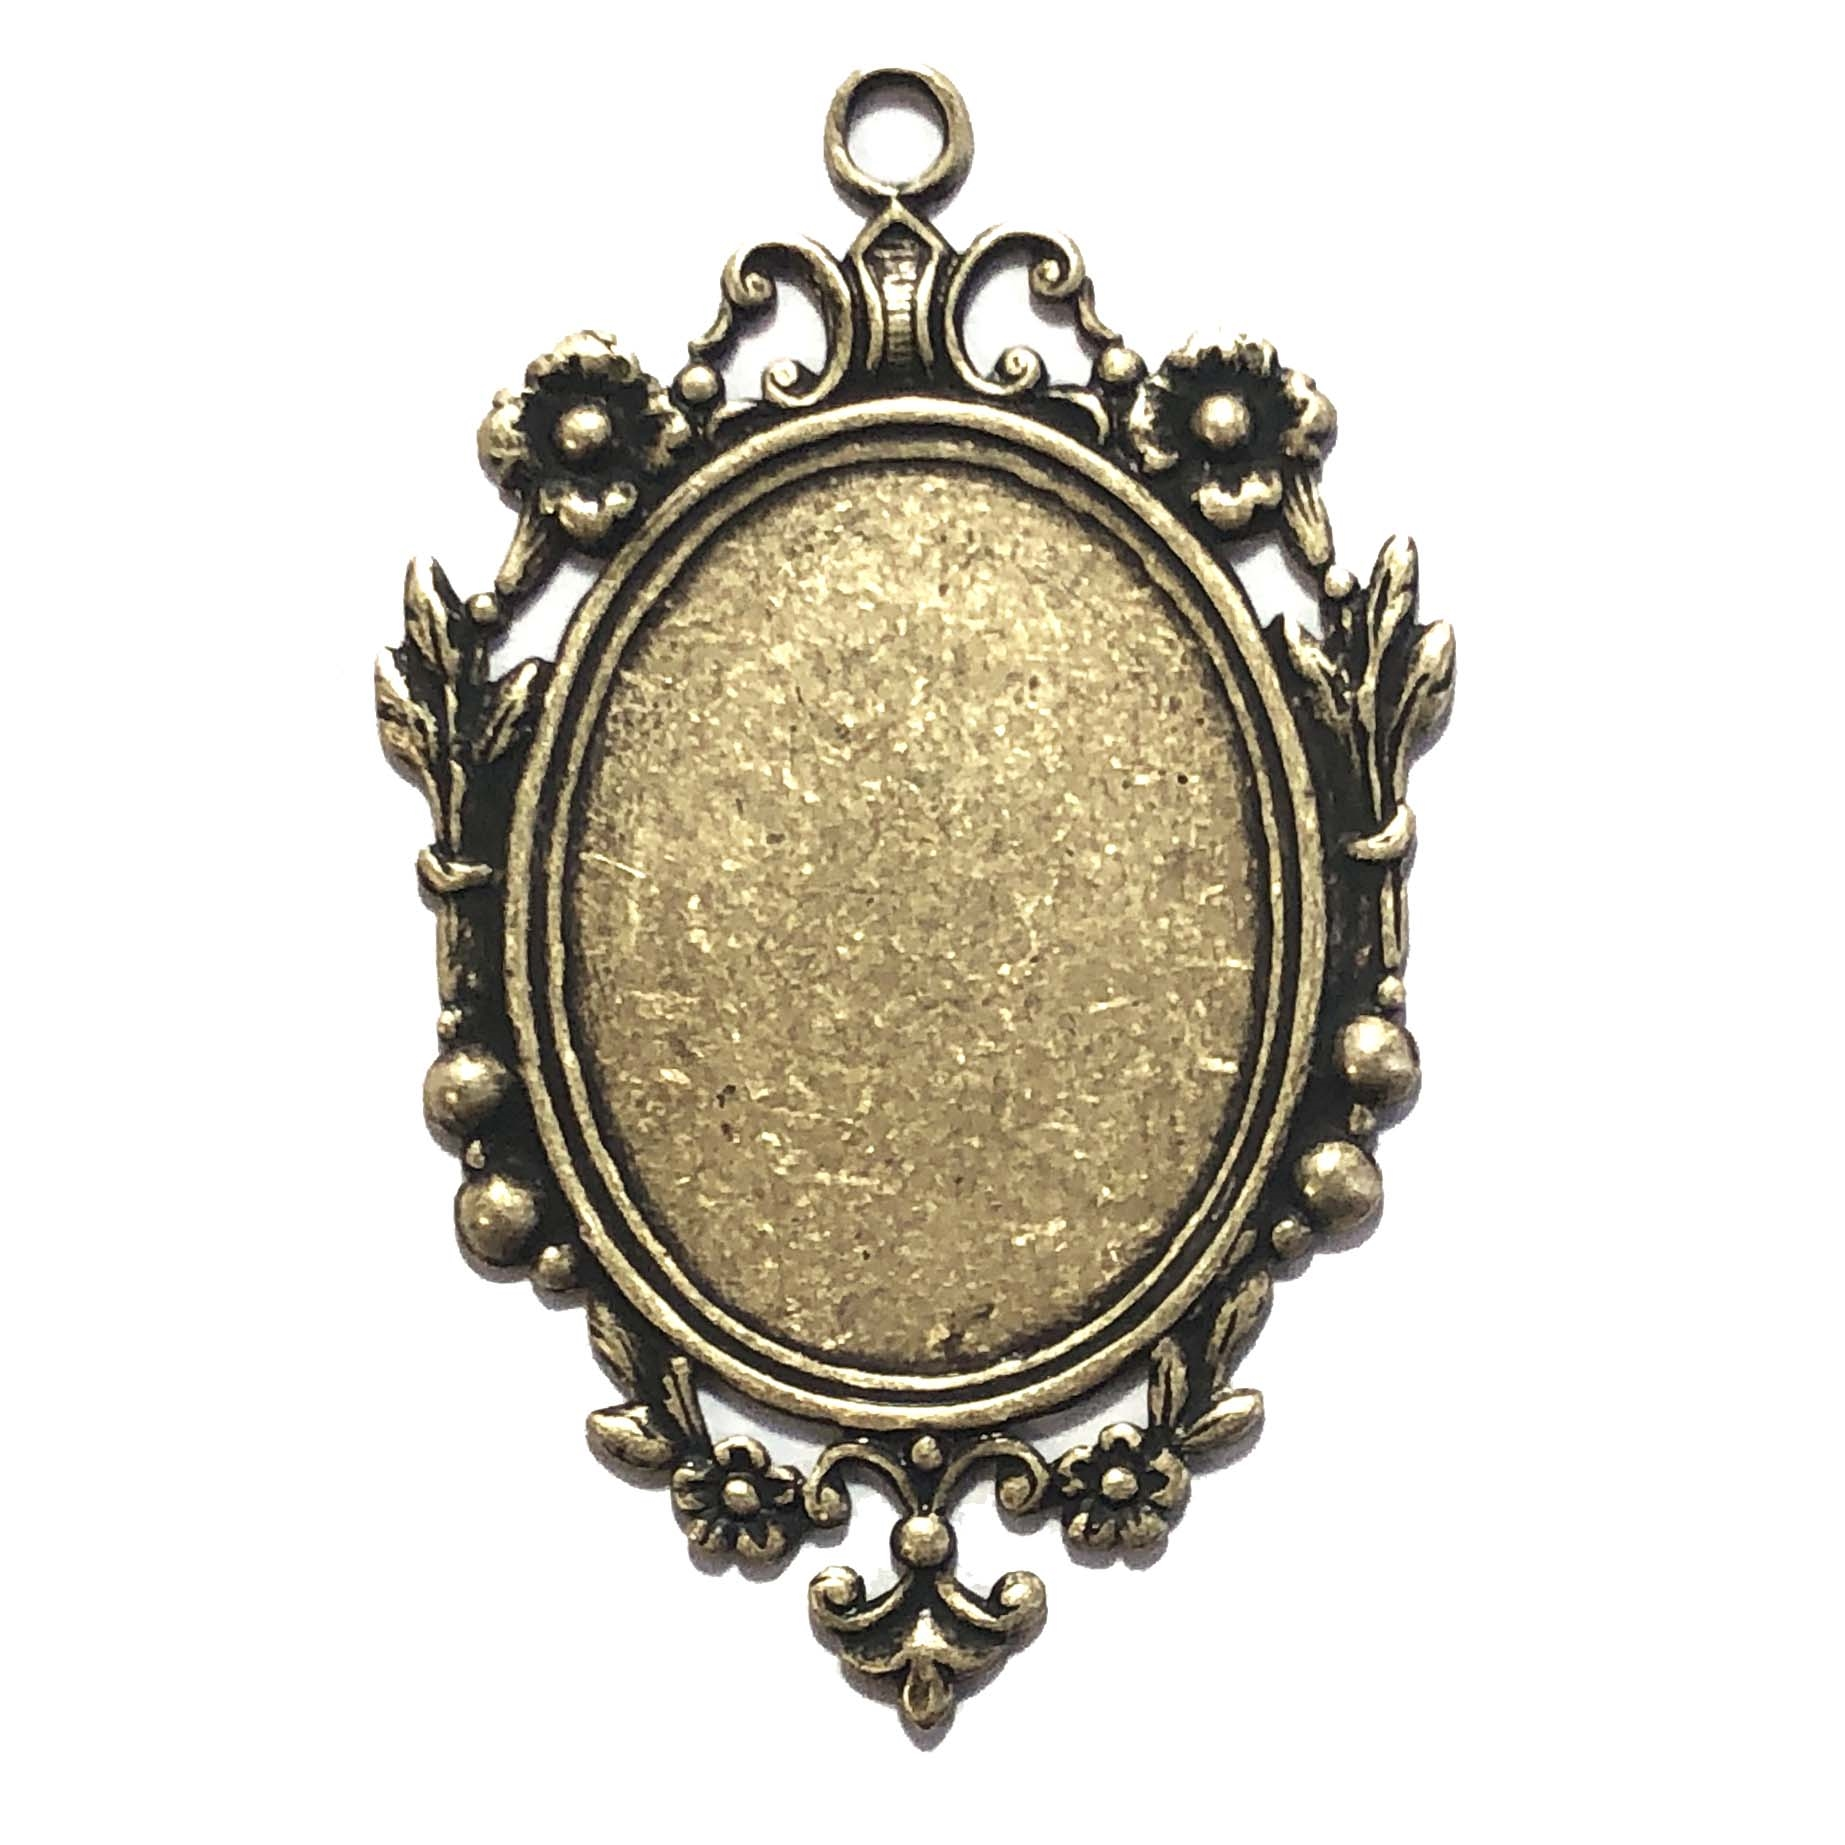 Victorian floral pendant mount, brass ox, antique black, mount, pendant, floral border, brass, Victorian mount, Victorian border, 55x36mm, pendant mount, floral pendant mount, brass stamping, US made, jewelry making, jewelry supplies, vintage, 09678